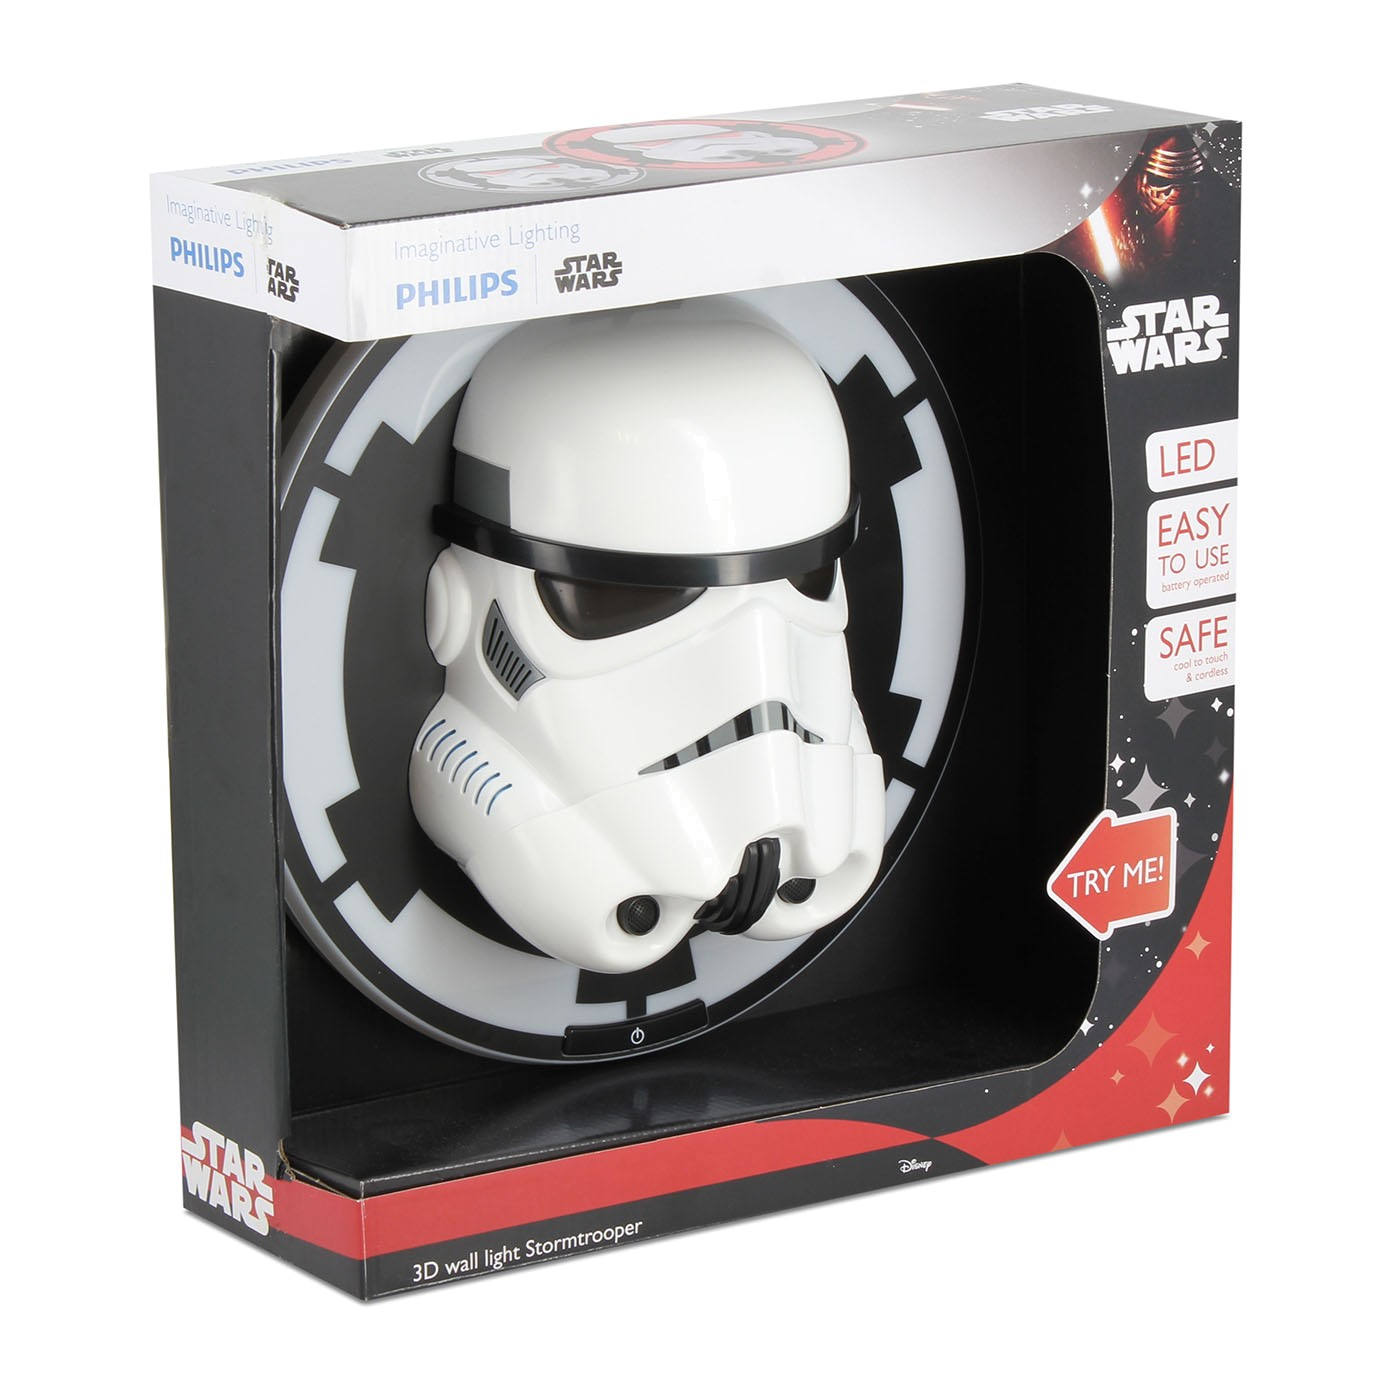 STARWARS STROMTROOPER LIGHT